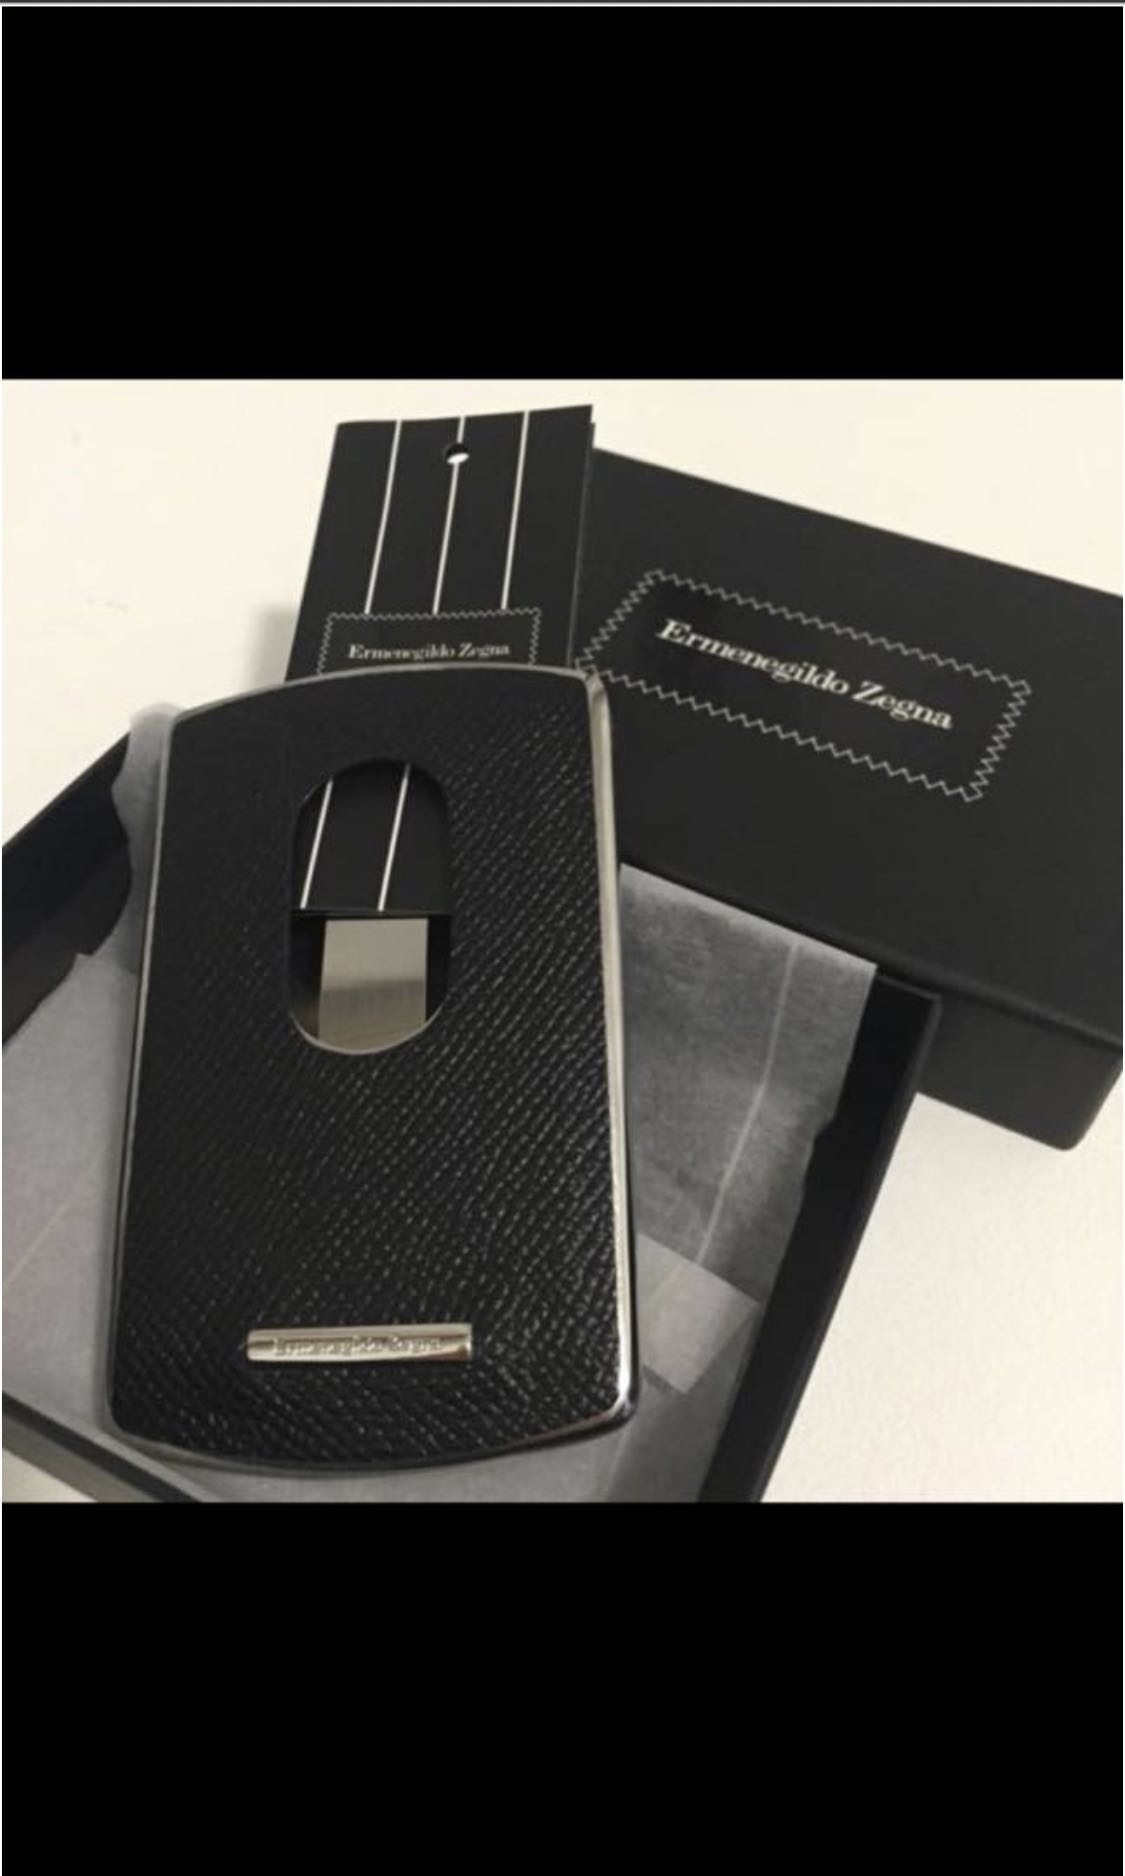 Ermenegildo zegna business and name cardholder stylish design slot ermenegildo zegna business and name cardholder stylish design slot in and slide out business cards brand new unused mens fashion bags wallets reheart Image collections